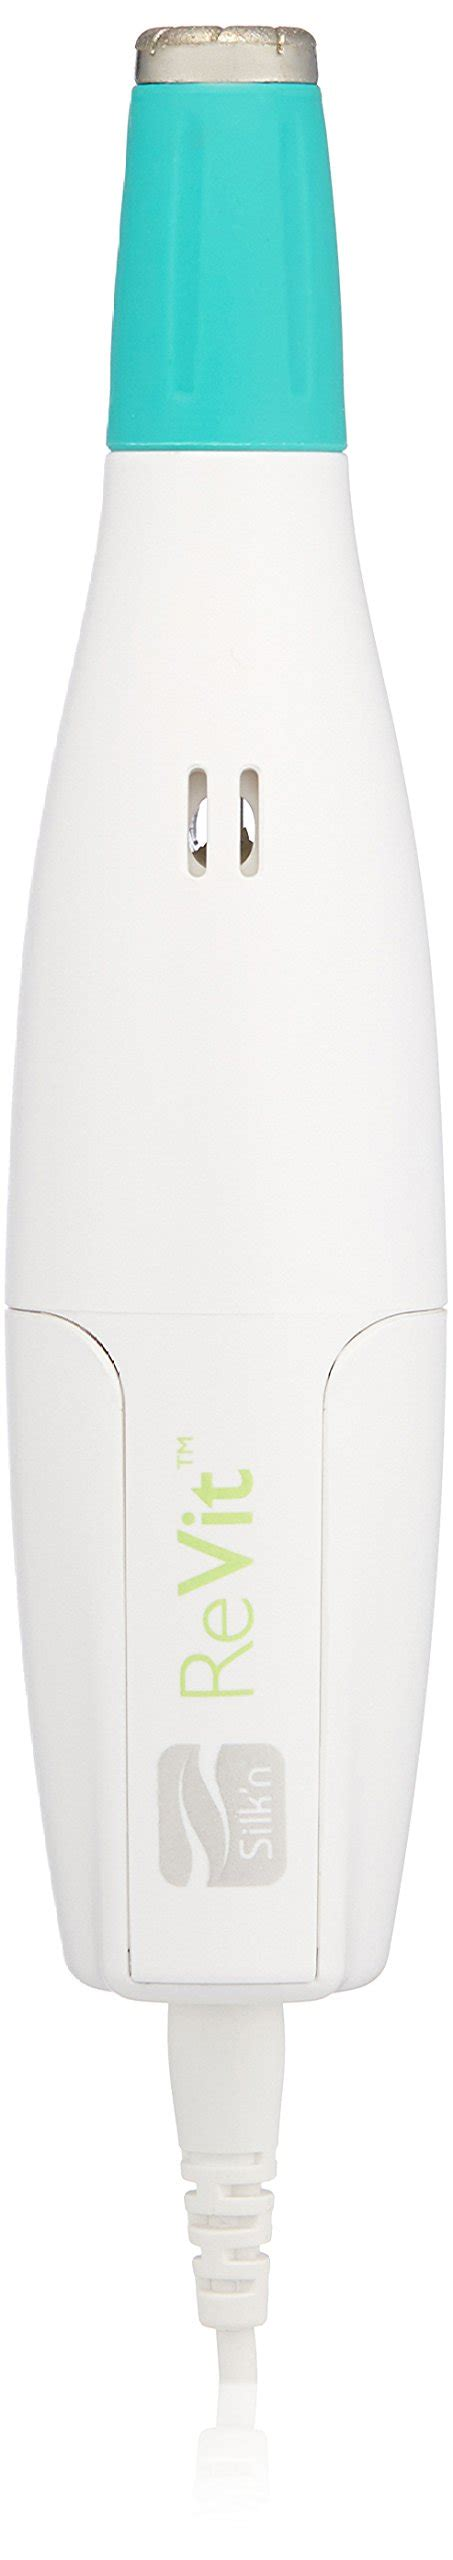 Amazon.com: Silk'n FaceFX - At Home Anti-Aging Skin Care